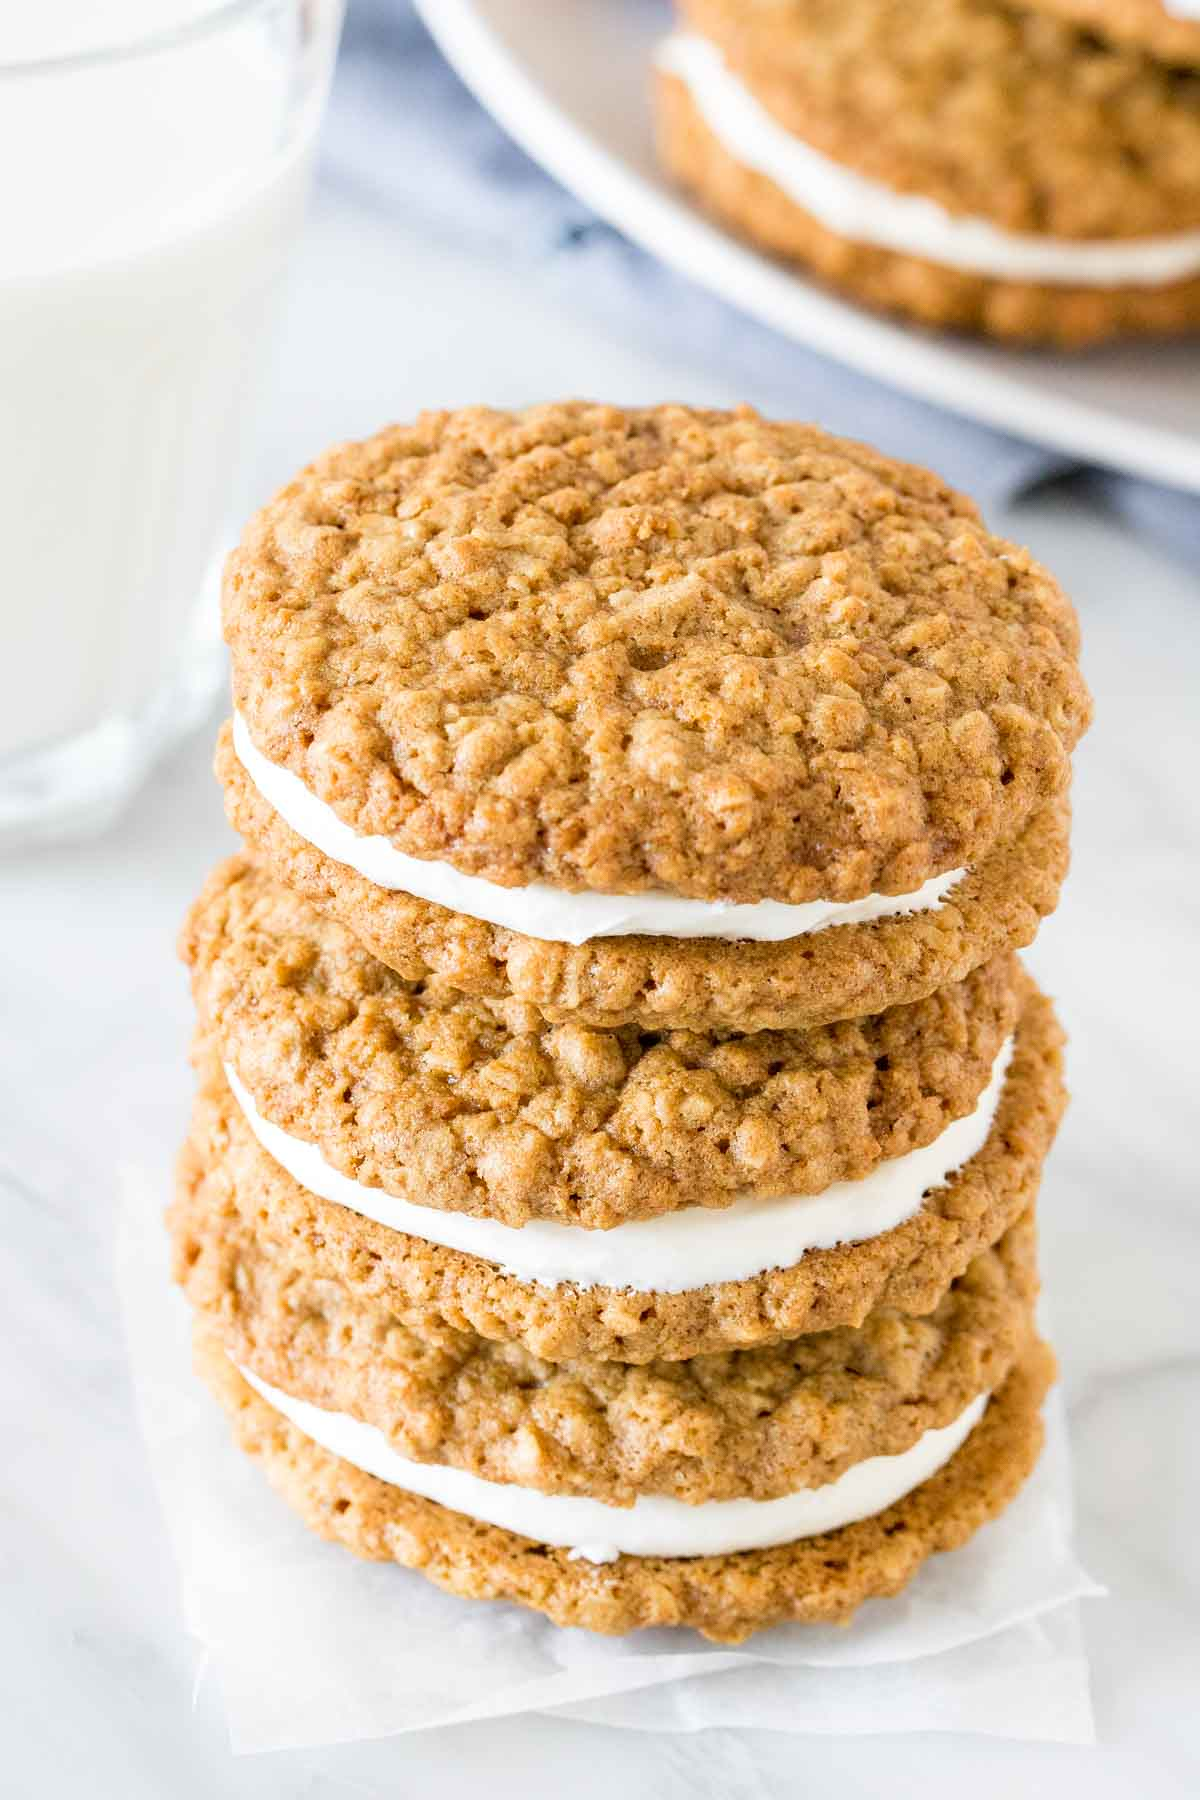 Stack of 3 oatmeal sandwich cookies with a glass of milk.